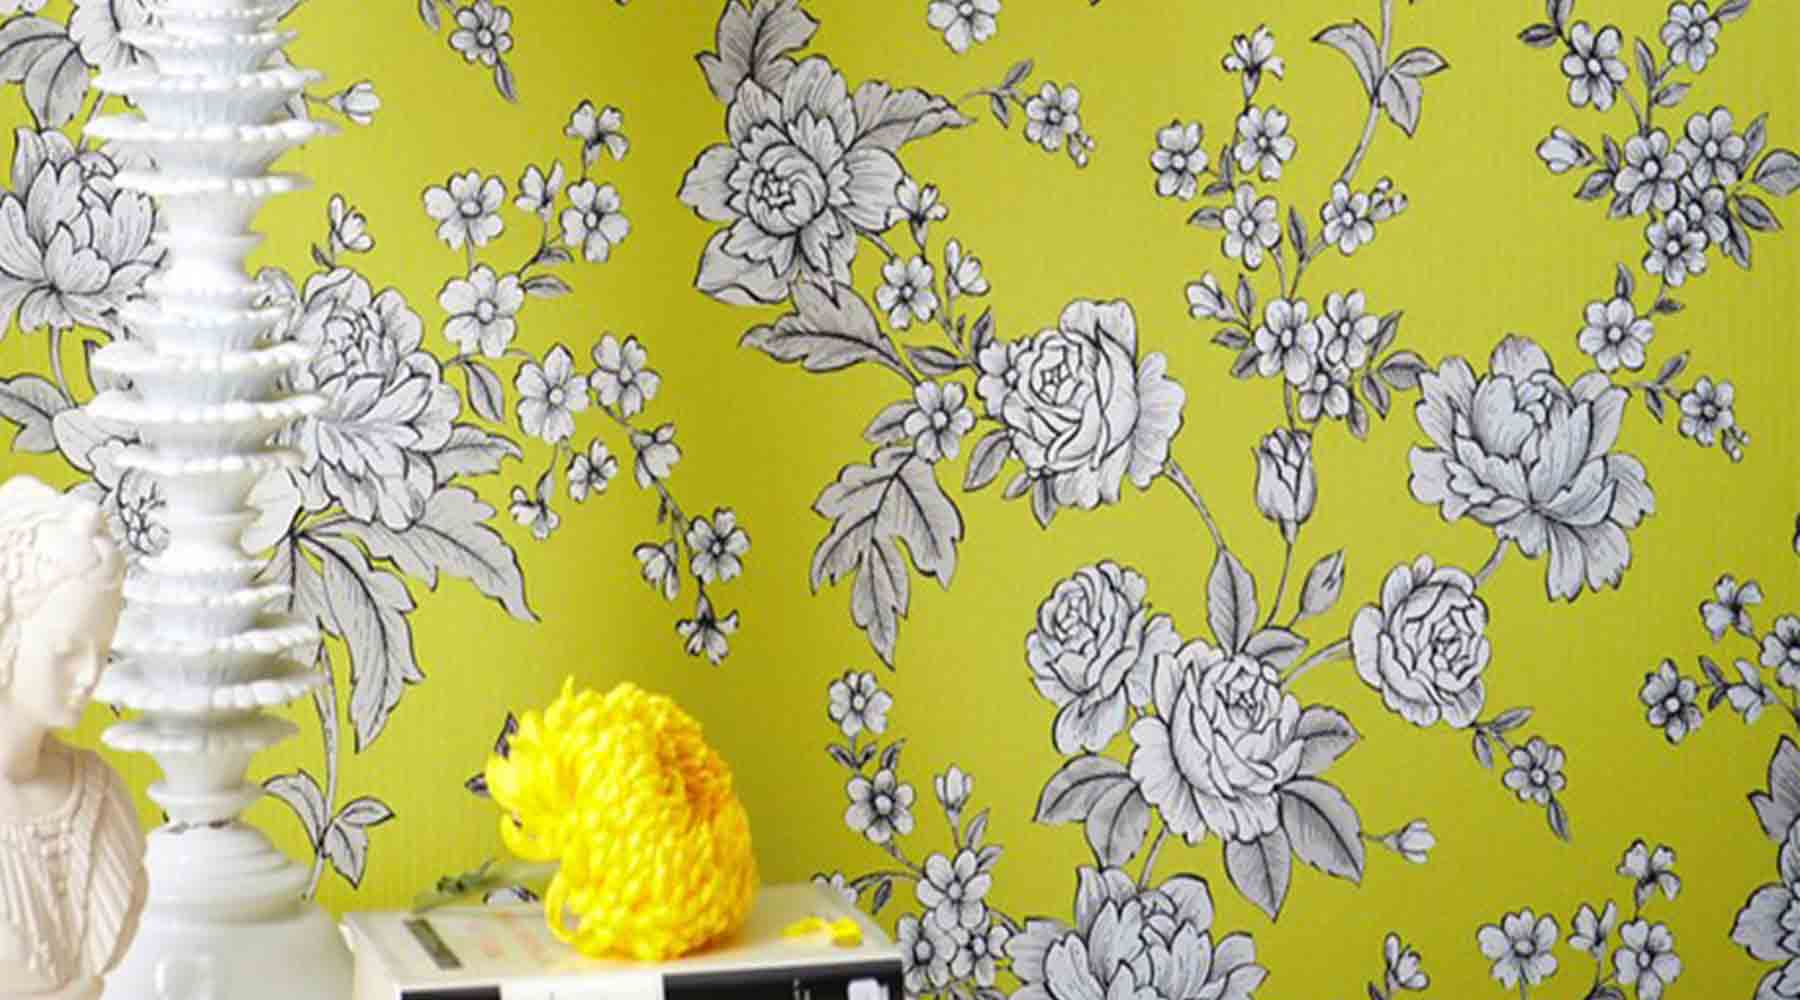 Top 5 Floral Wallpaper Designs